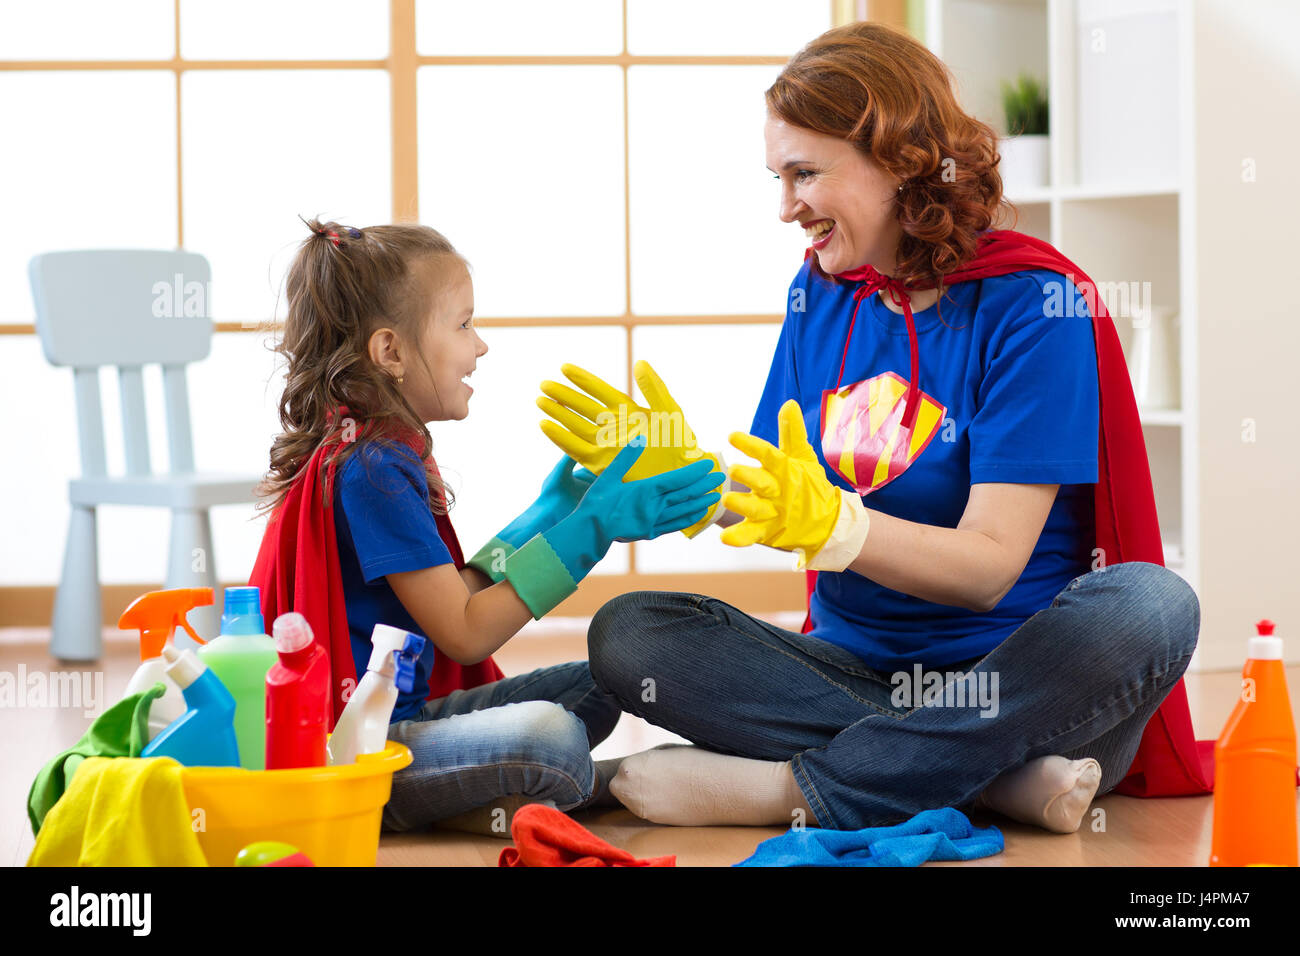 Happy mother with kid cleaning room and having fun playing at home. Family housework conception. - Stock Image